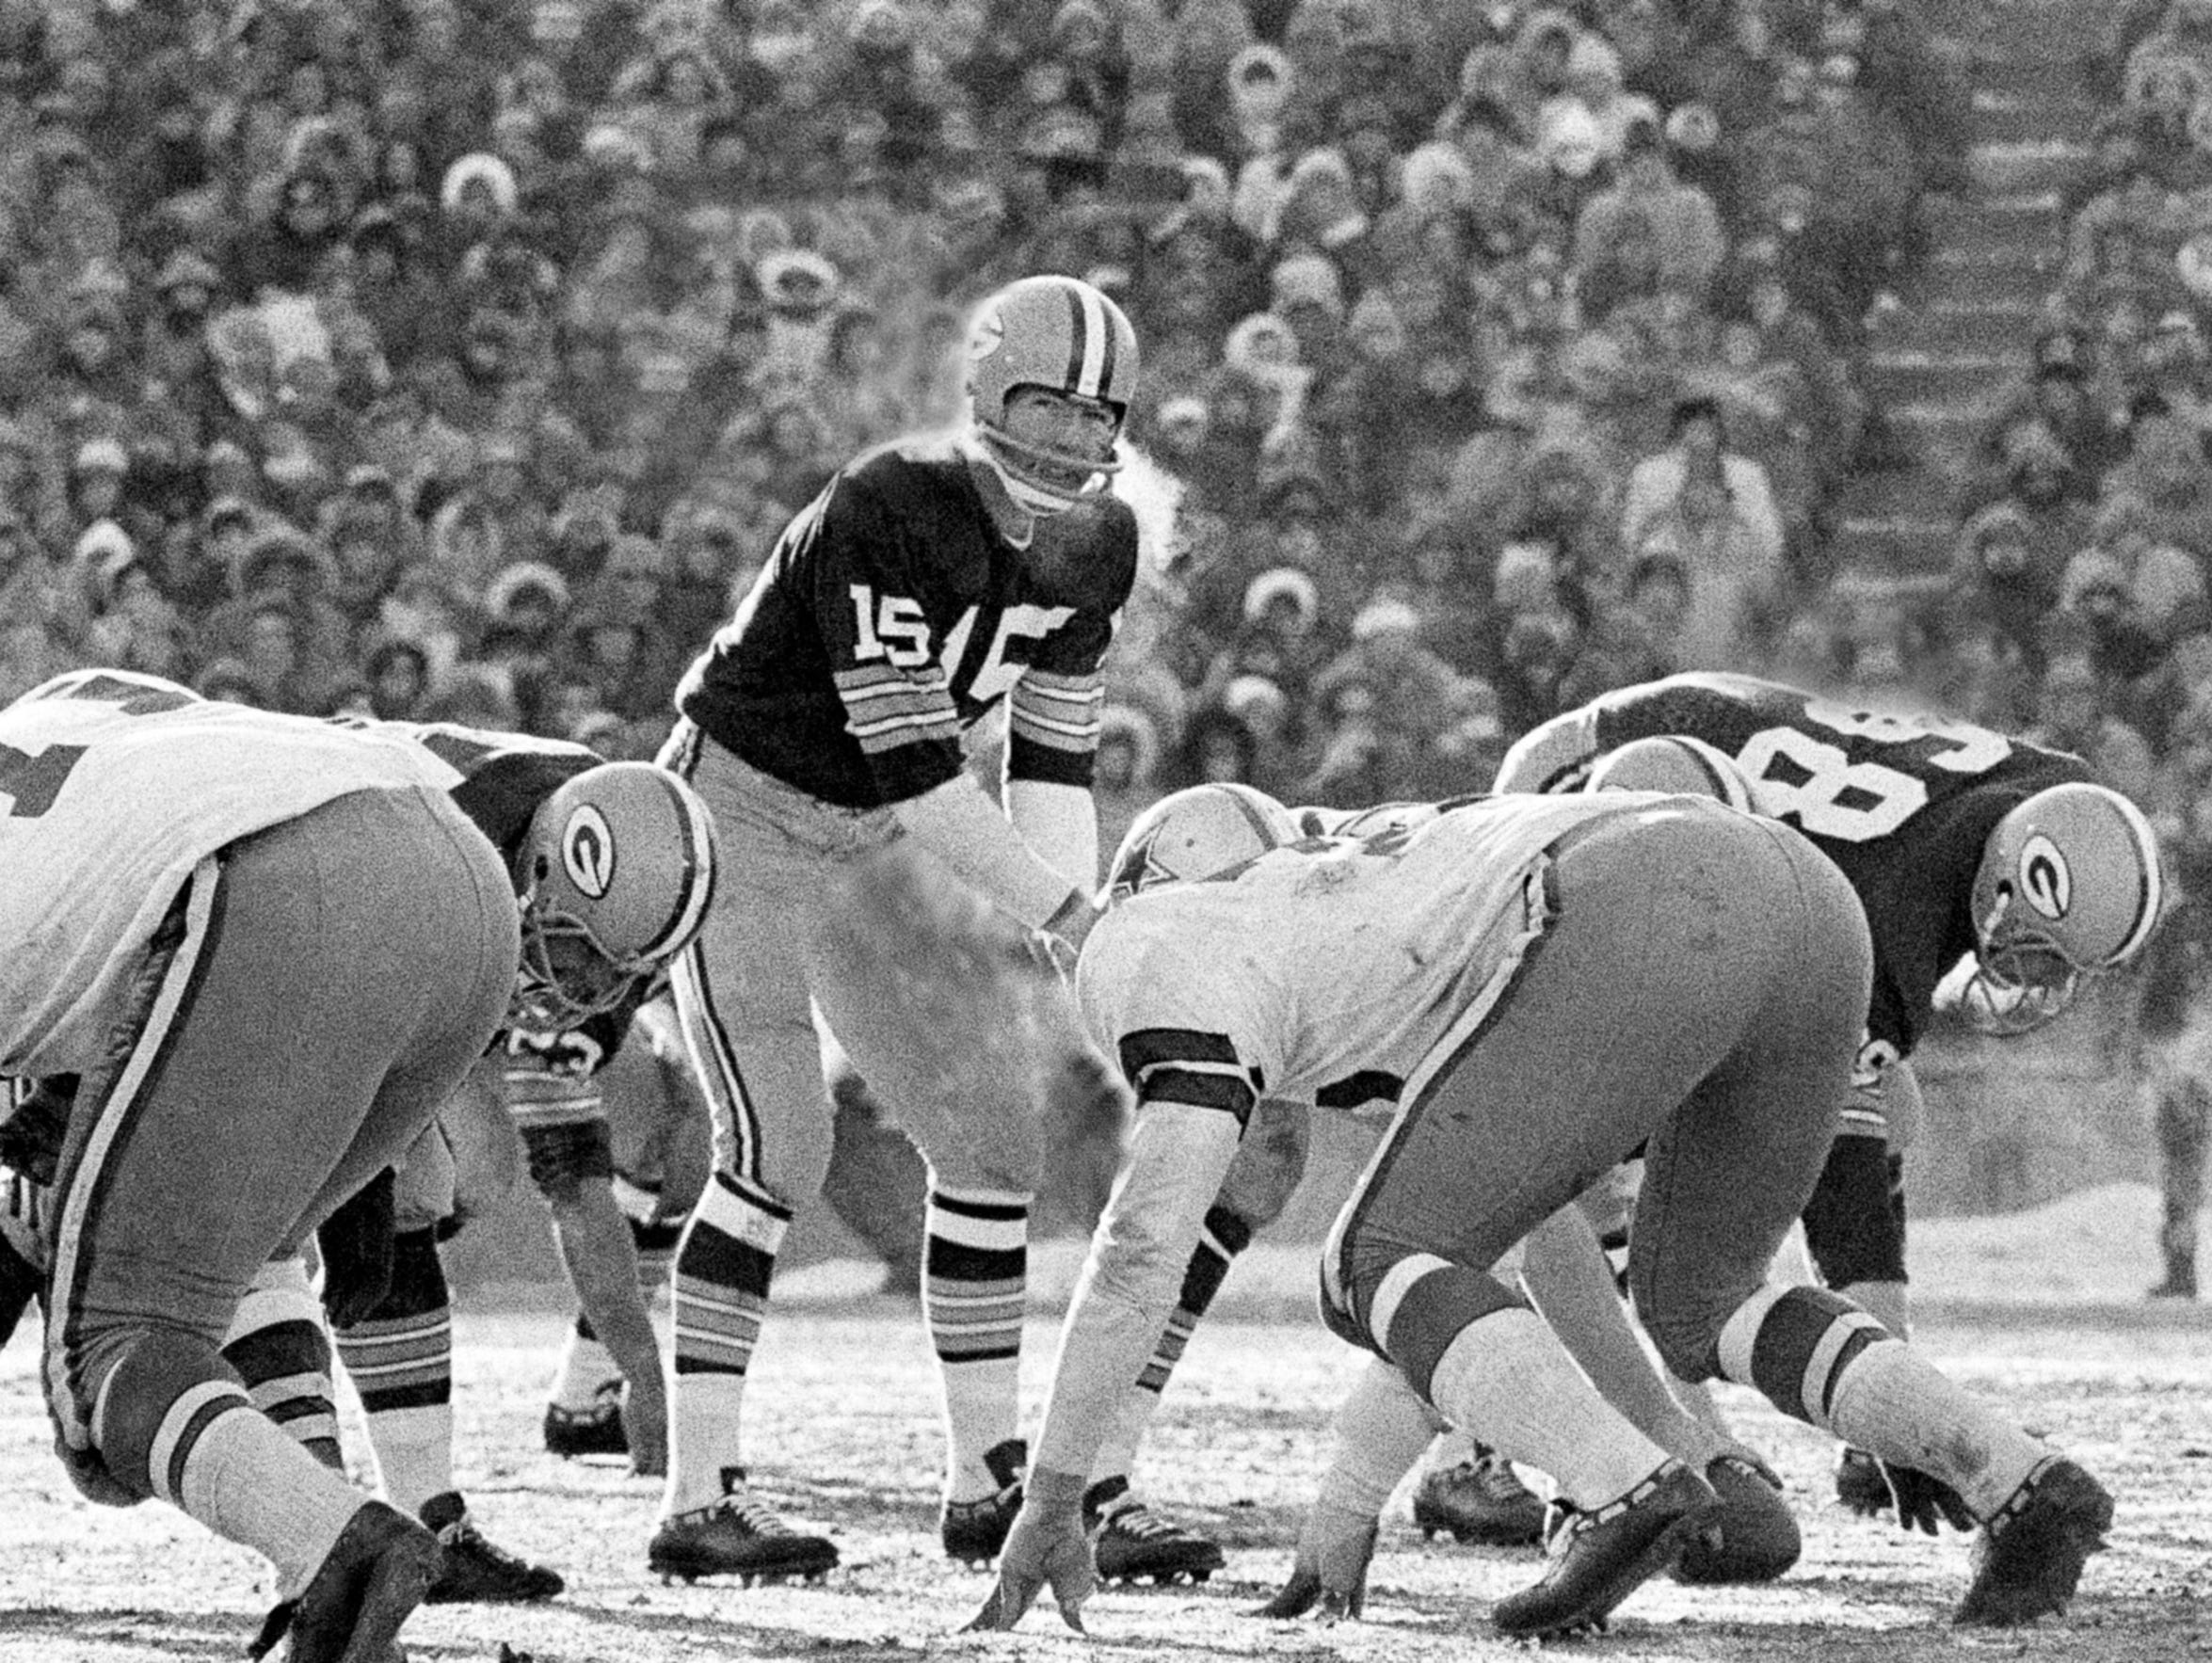 Green Bay Packers quarterback Bart Starr completed 14 of 21 passes for 191 yards and two touchdowns in the 1967 NFL Championship Game against the Dallas Cowboys at Lambeau Field, in the Ice Bowl. But, of course, he'll be remembered most for his 1-yard plunge to win the game.